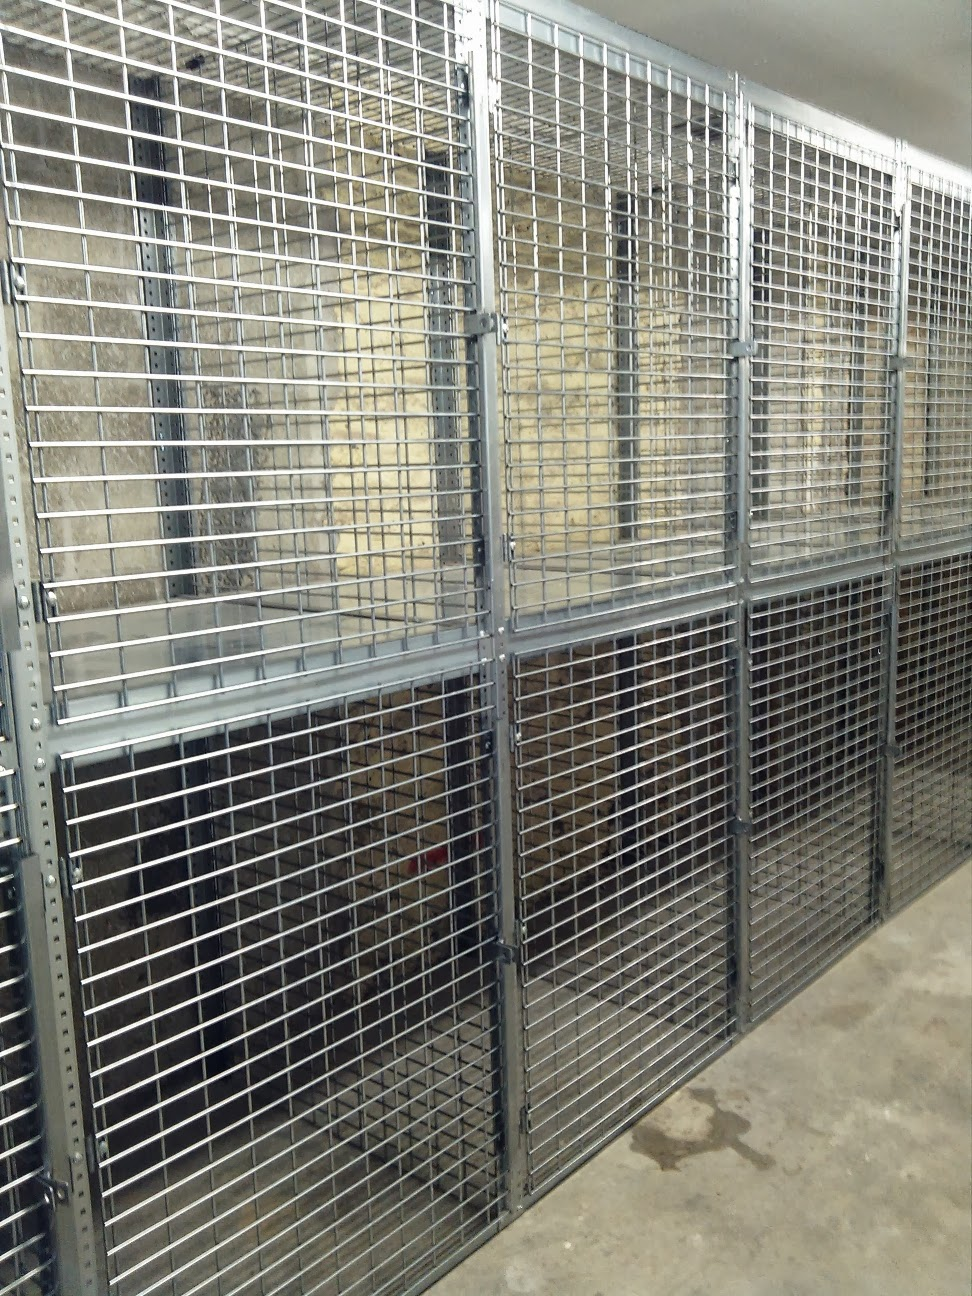 Data Center Cages in NJ | NJ Data Center Cages, Colocation Cages ...